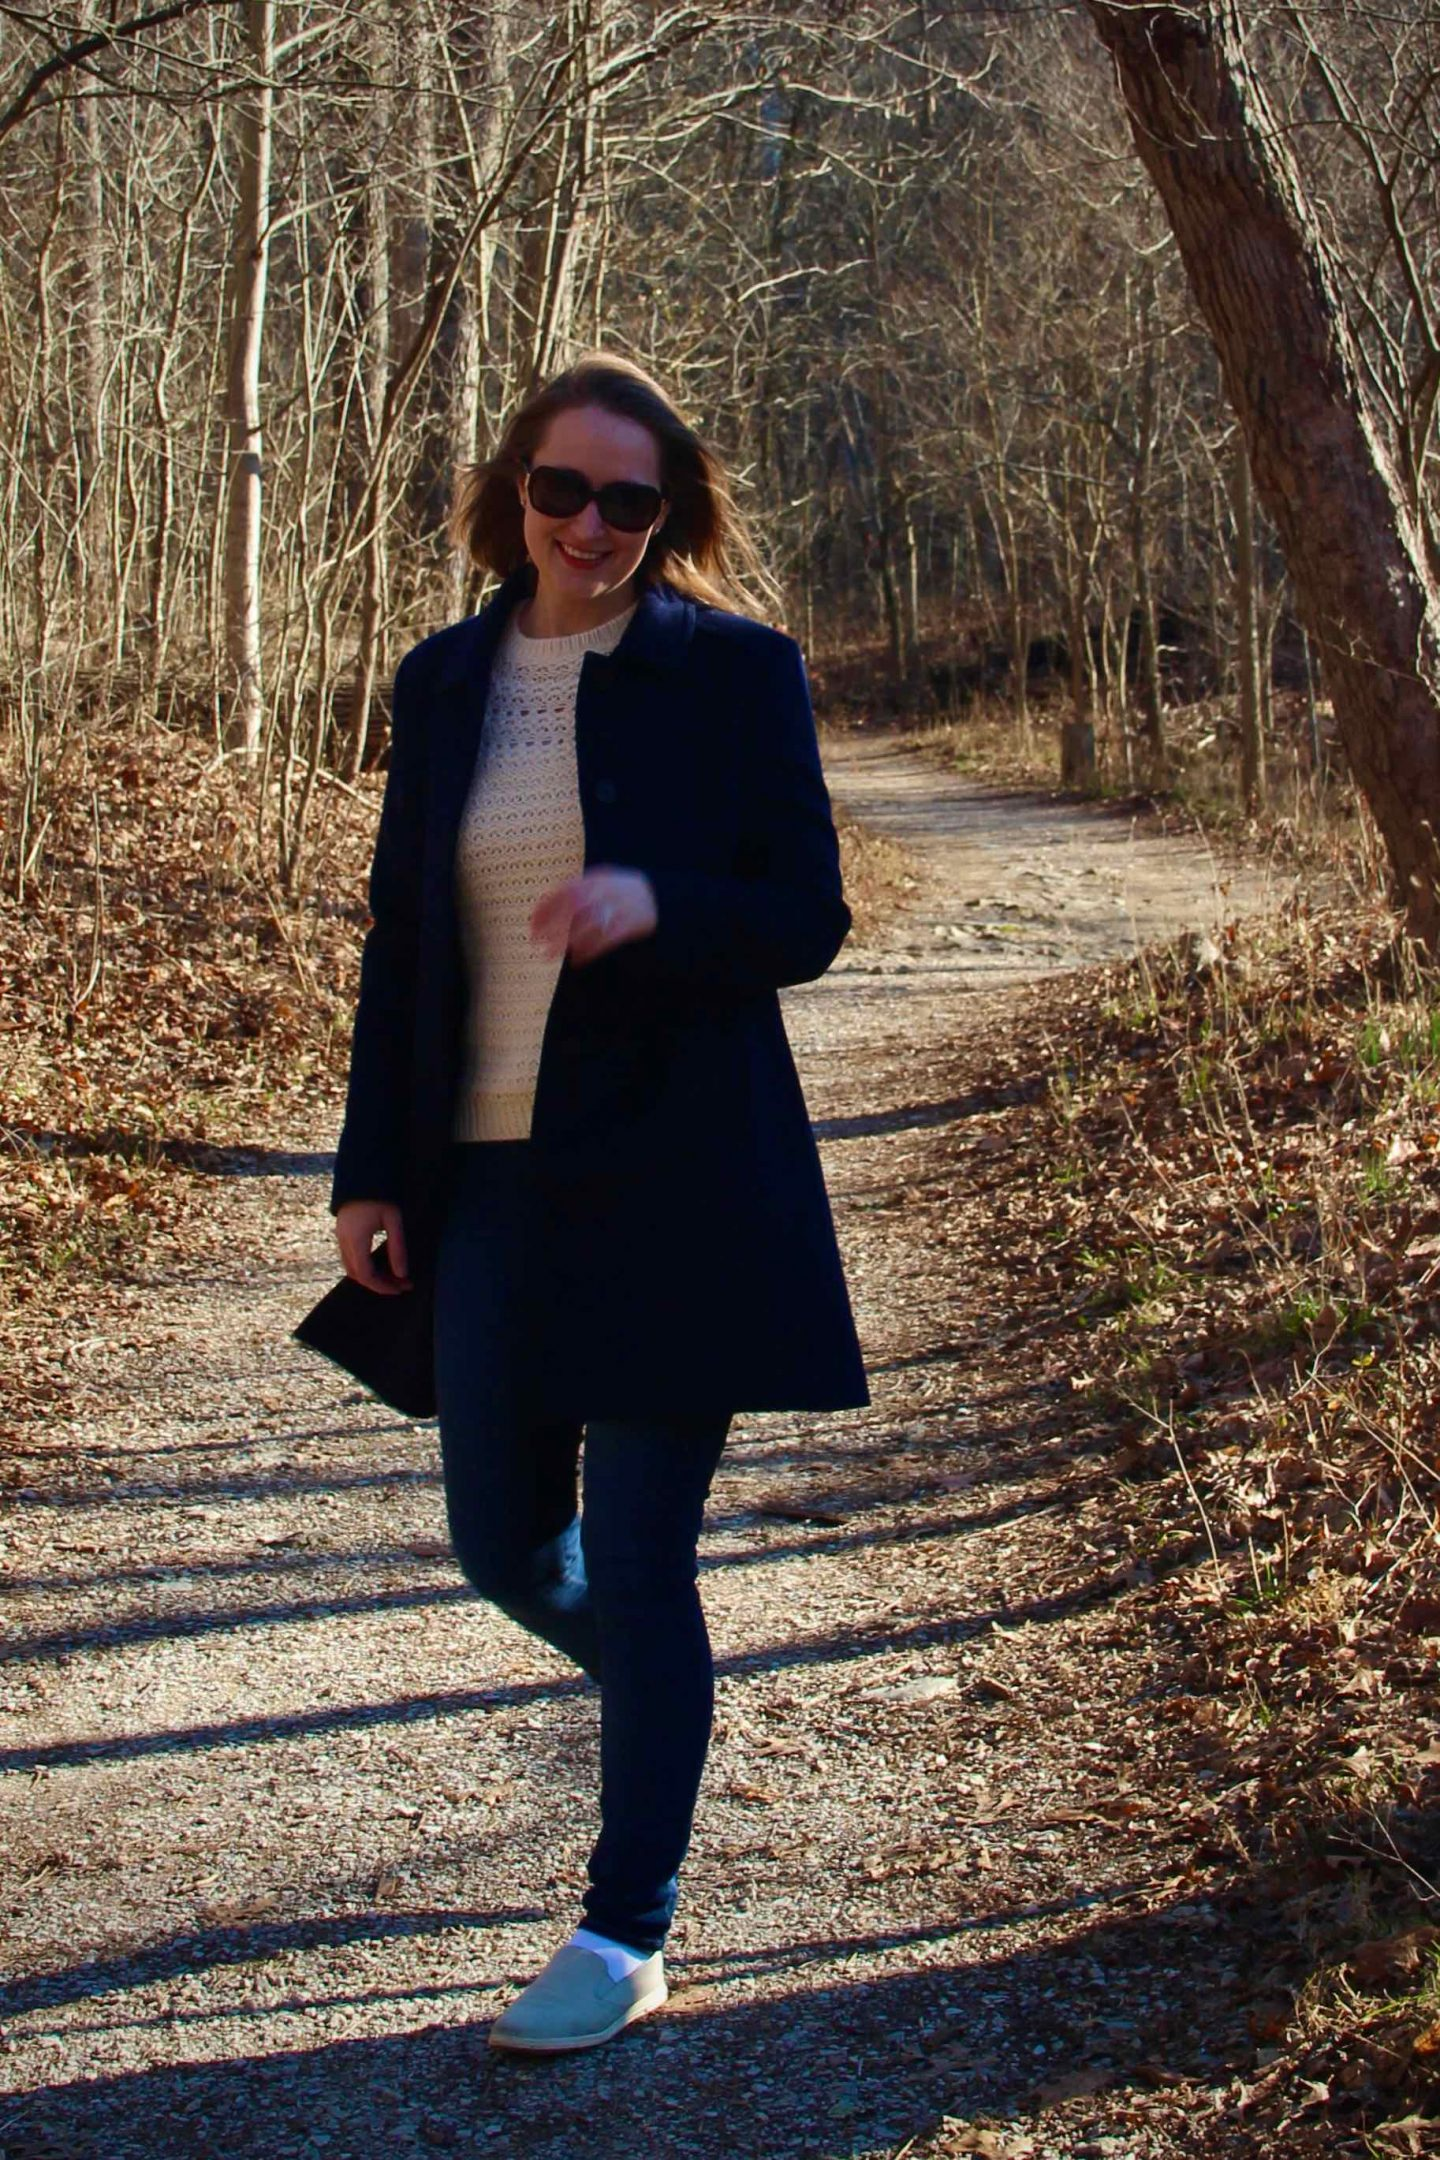 Preppy Winter Coat & Fair Isle Sweater | Walks through Sharon Woods | The Spectacular Adventurer